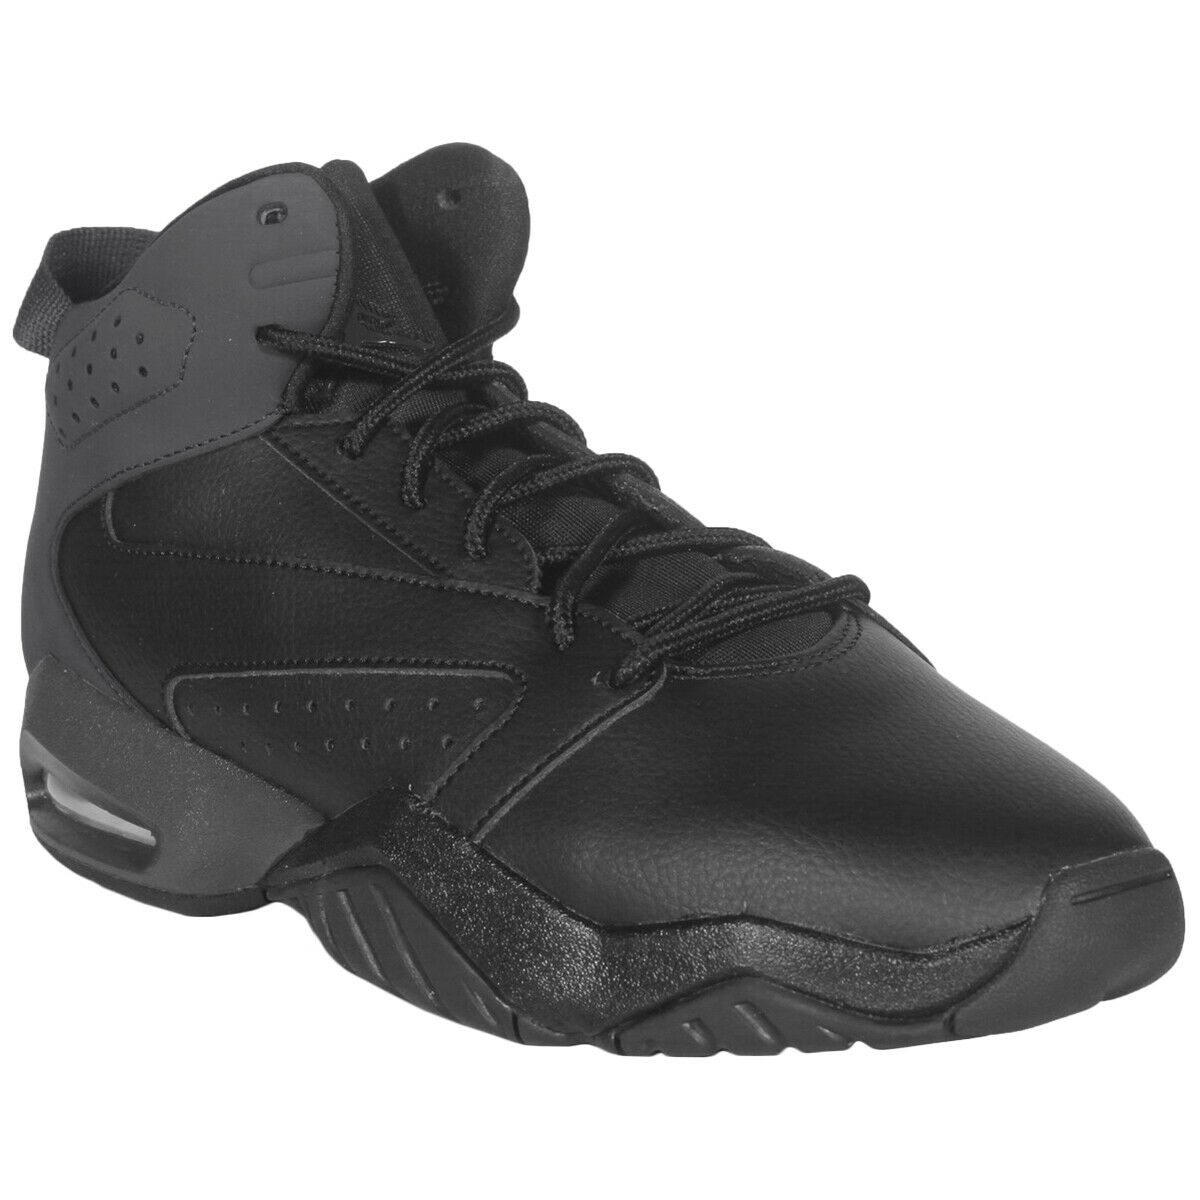 Nike Jordan Lift Off Leather Synthetic High-Top Sports Mens Trainers